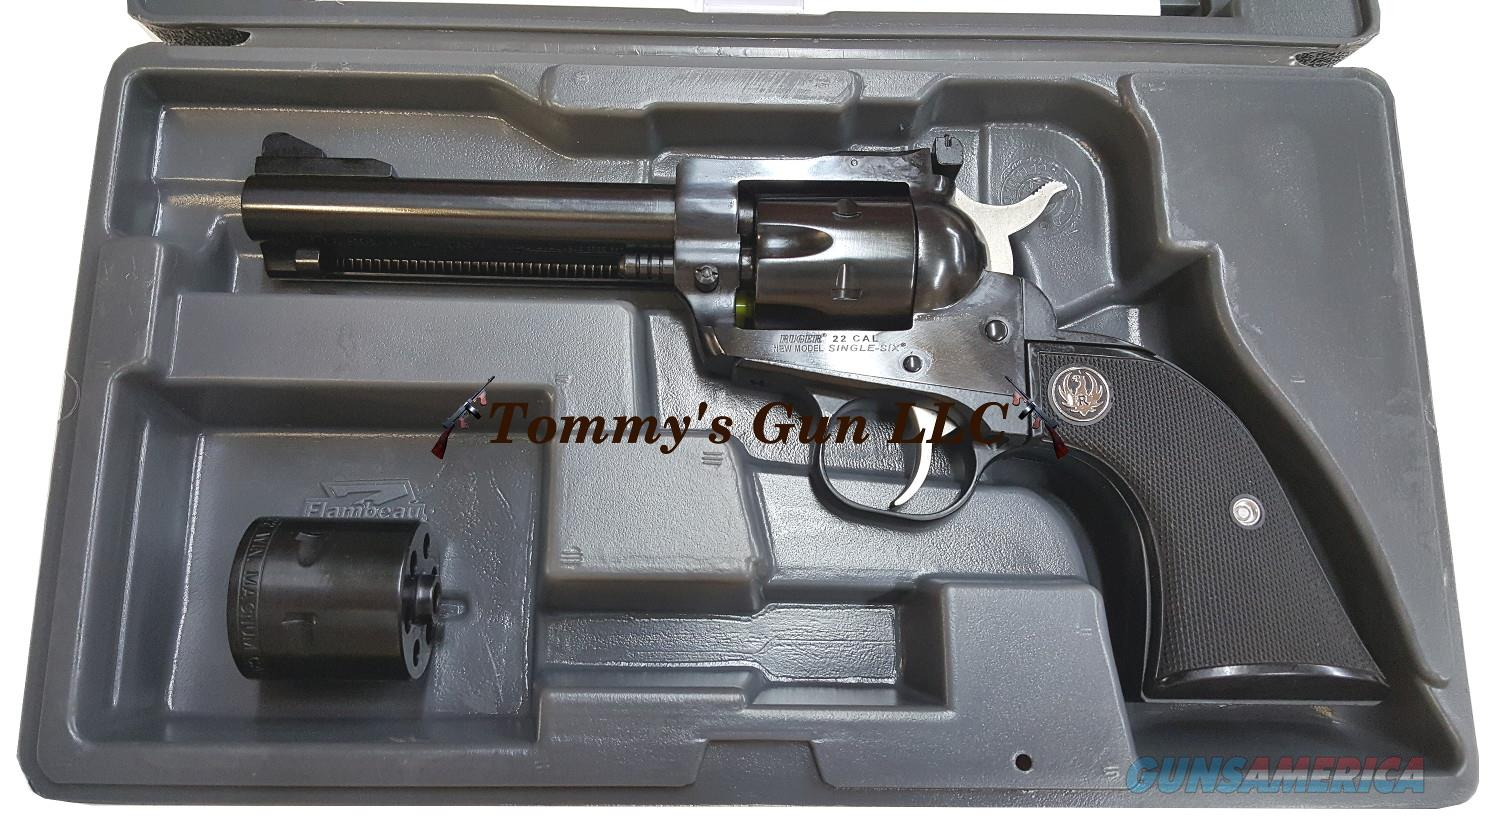 Ruger Single Six 22lr/22mag 0623 Convertible NIB  Guns > Pistols > Ruger Single Action Revolvers > Single Six Type